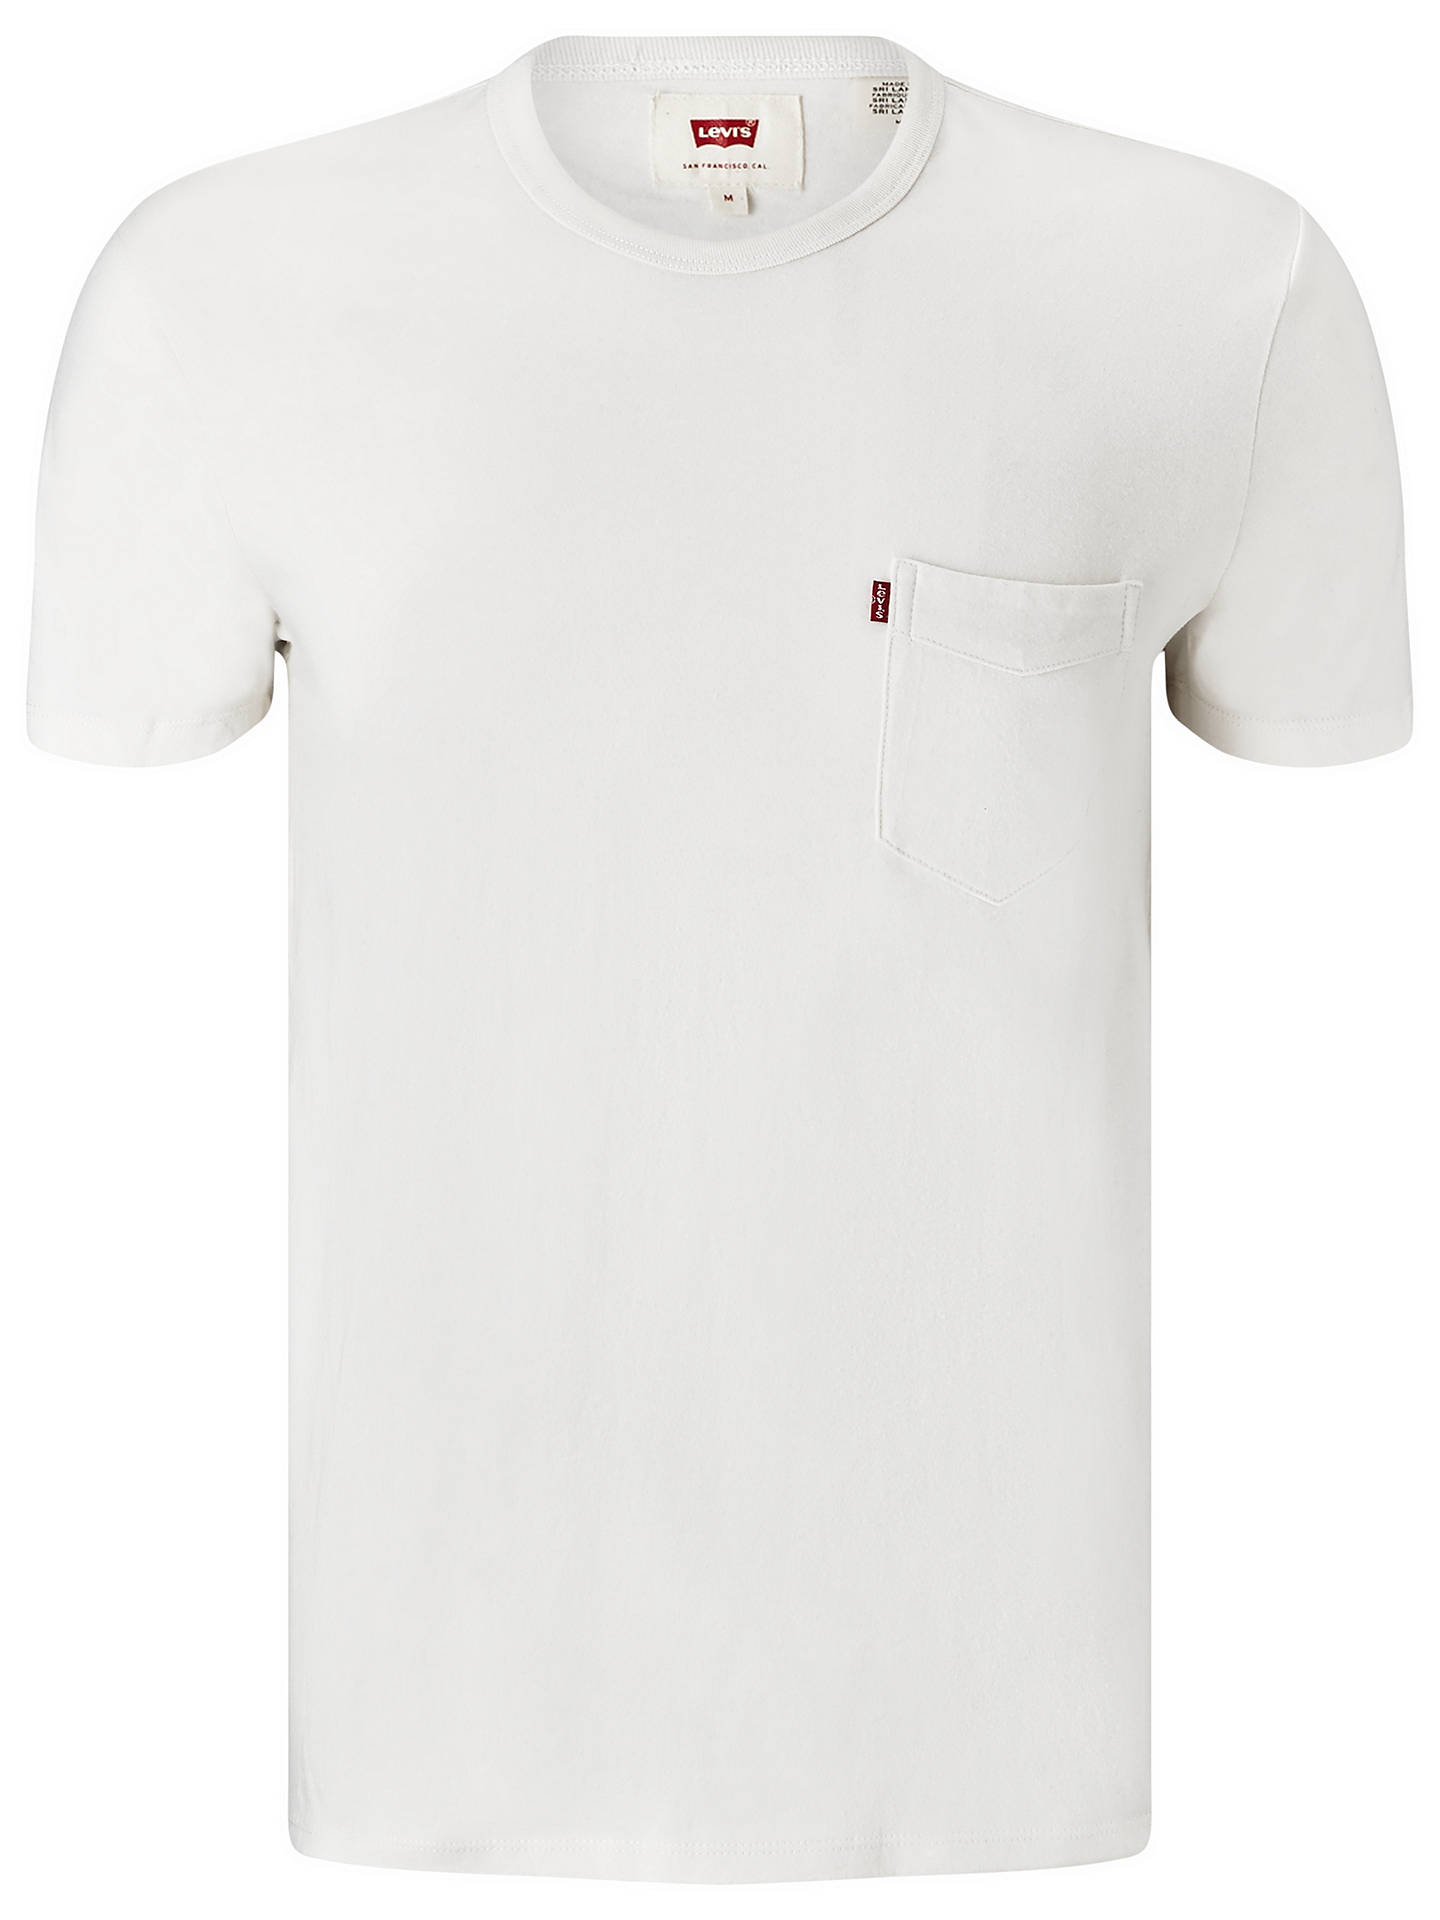 Buy Levi's One Pocket Short Sleeve T-Shirt, Smoke White, S Online at johnlewis.com